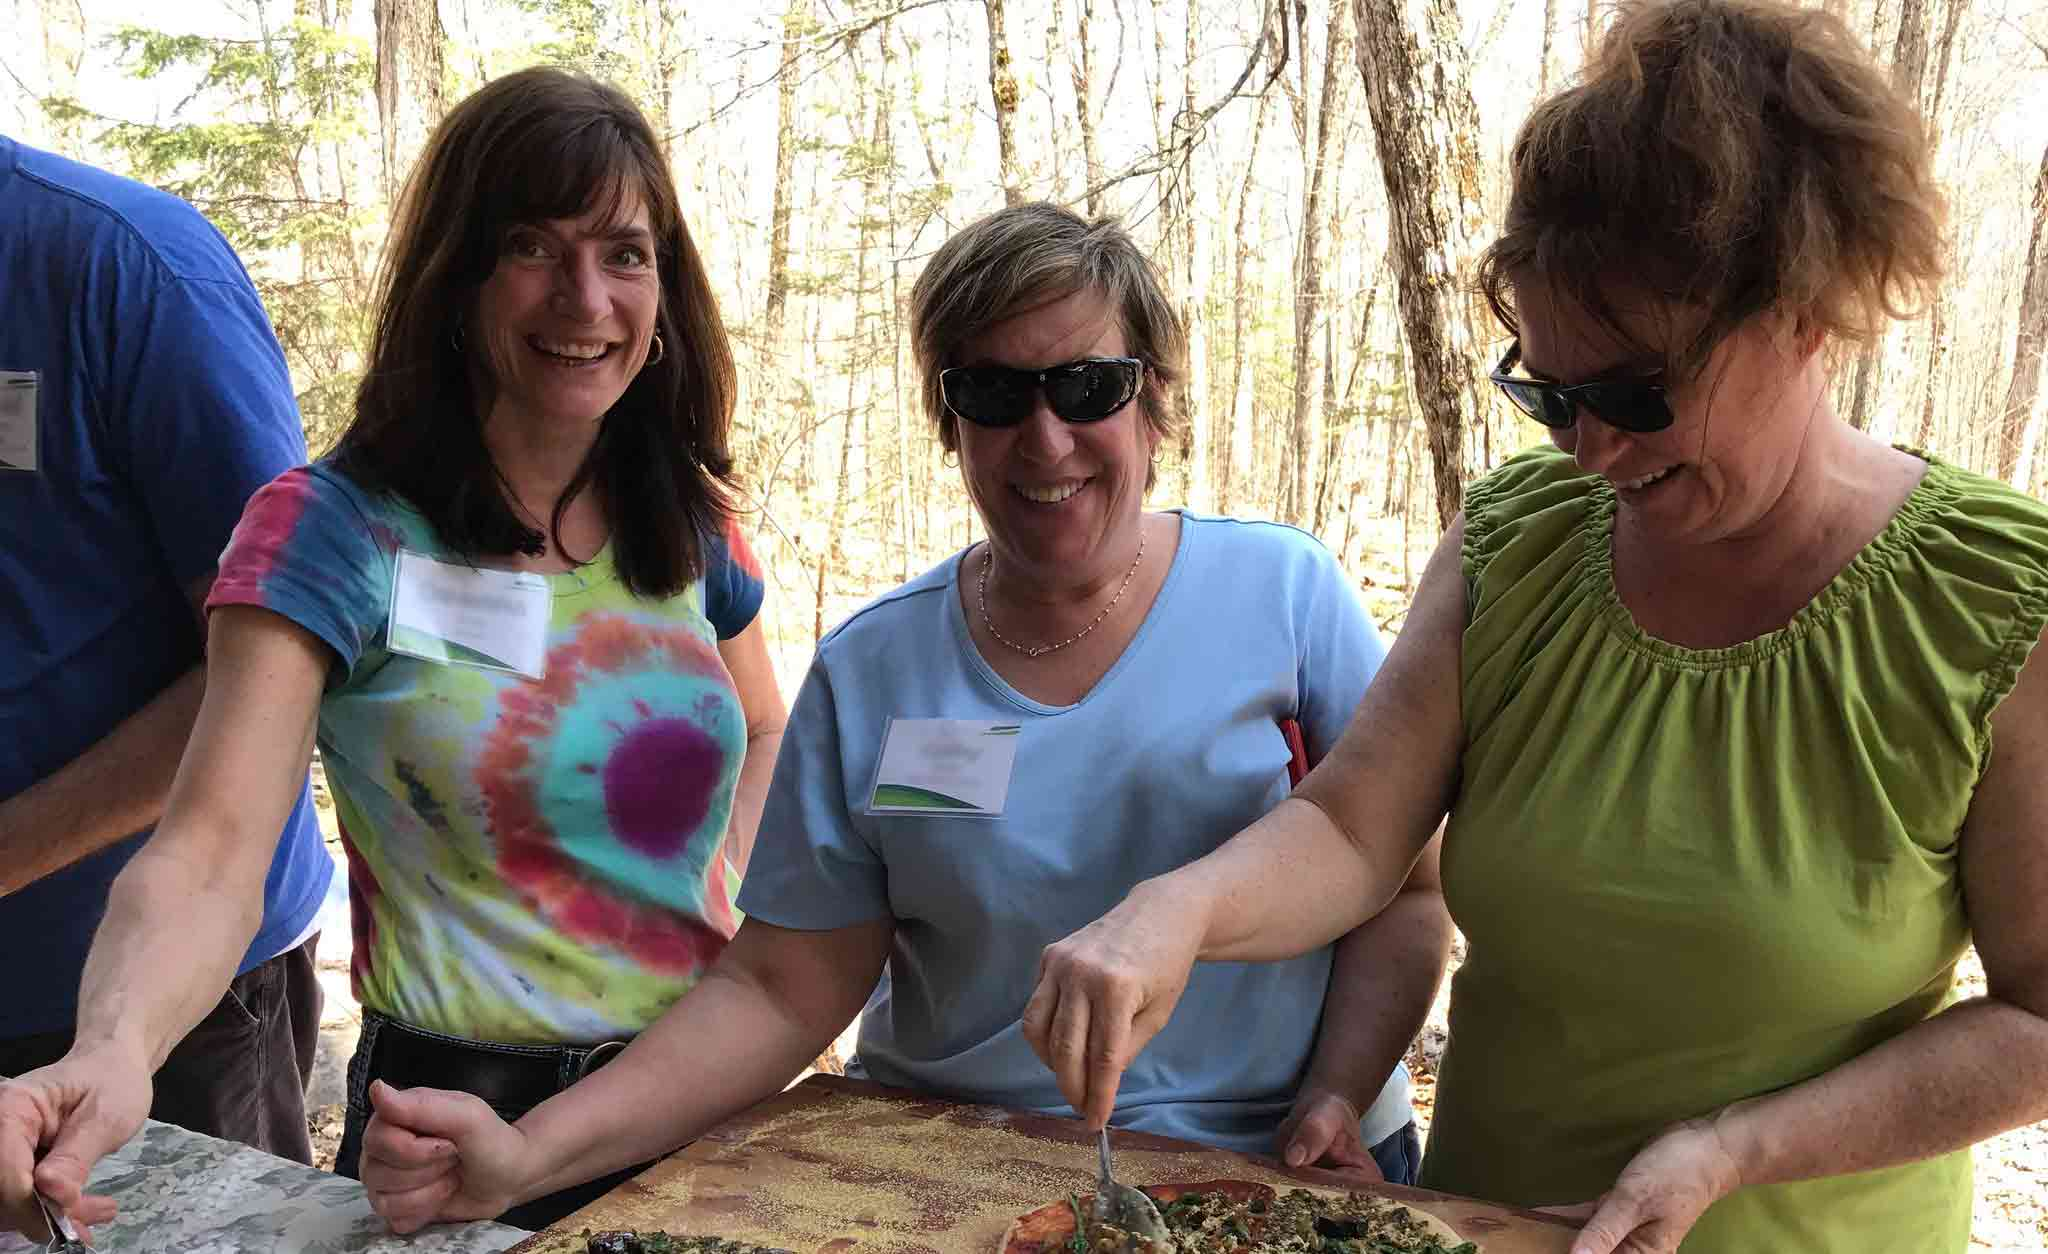 Three women are eating a buffet style meal